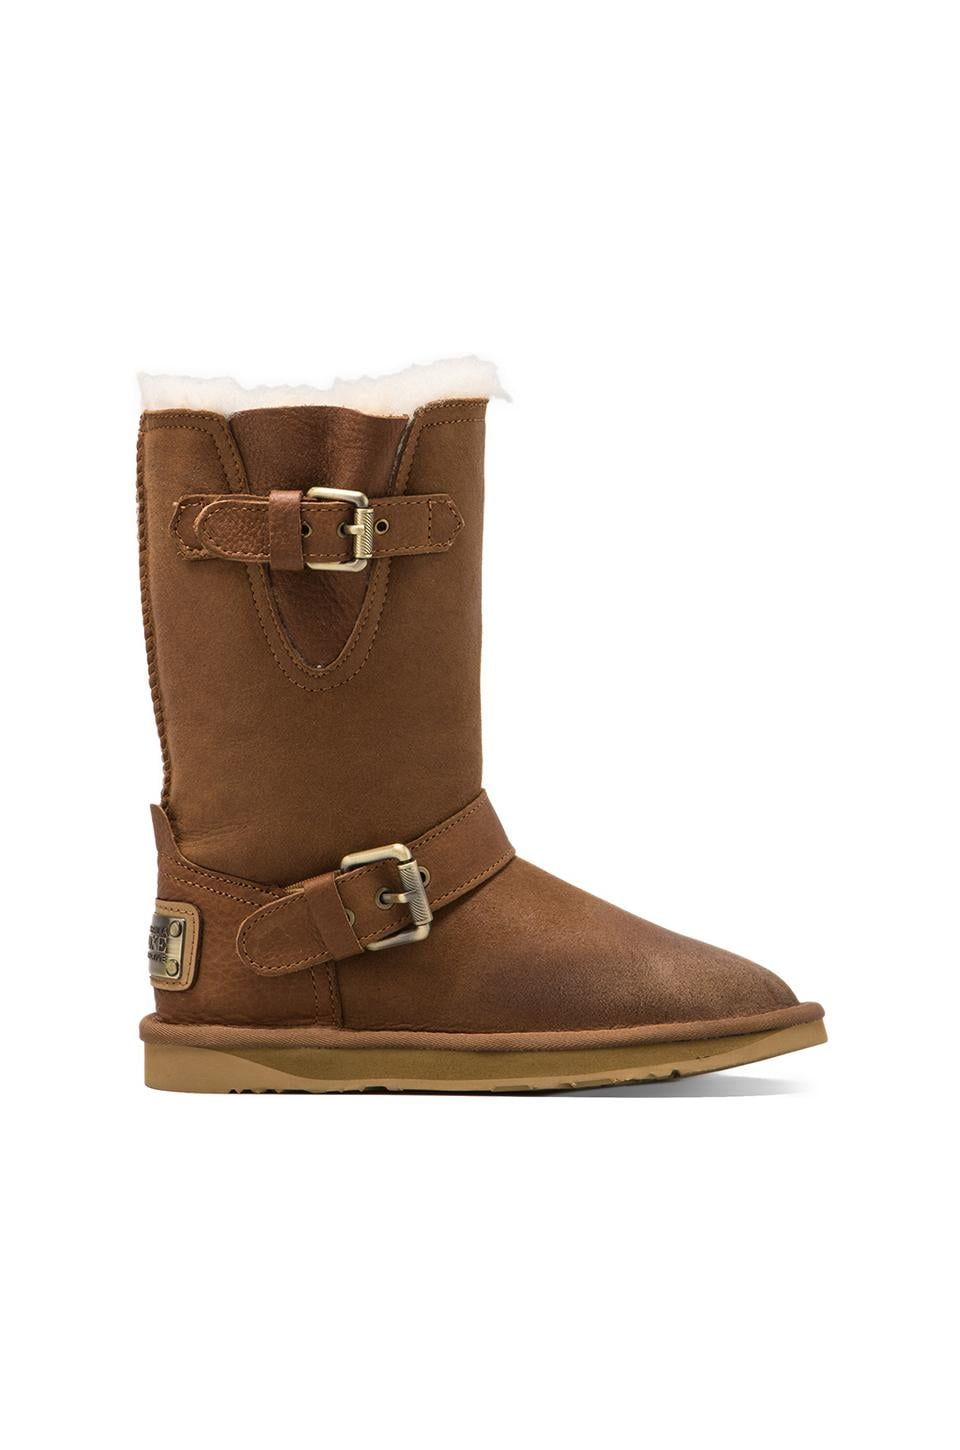 Australia Luxe Collective Machina Boot With Sheep Shearling in Chestnut